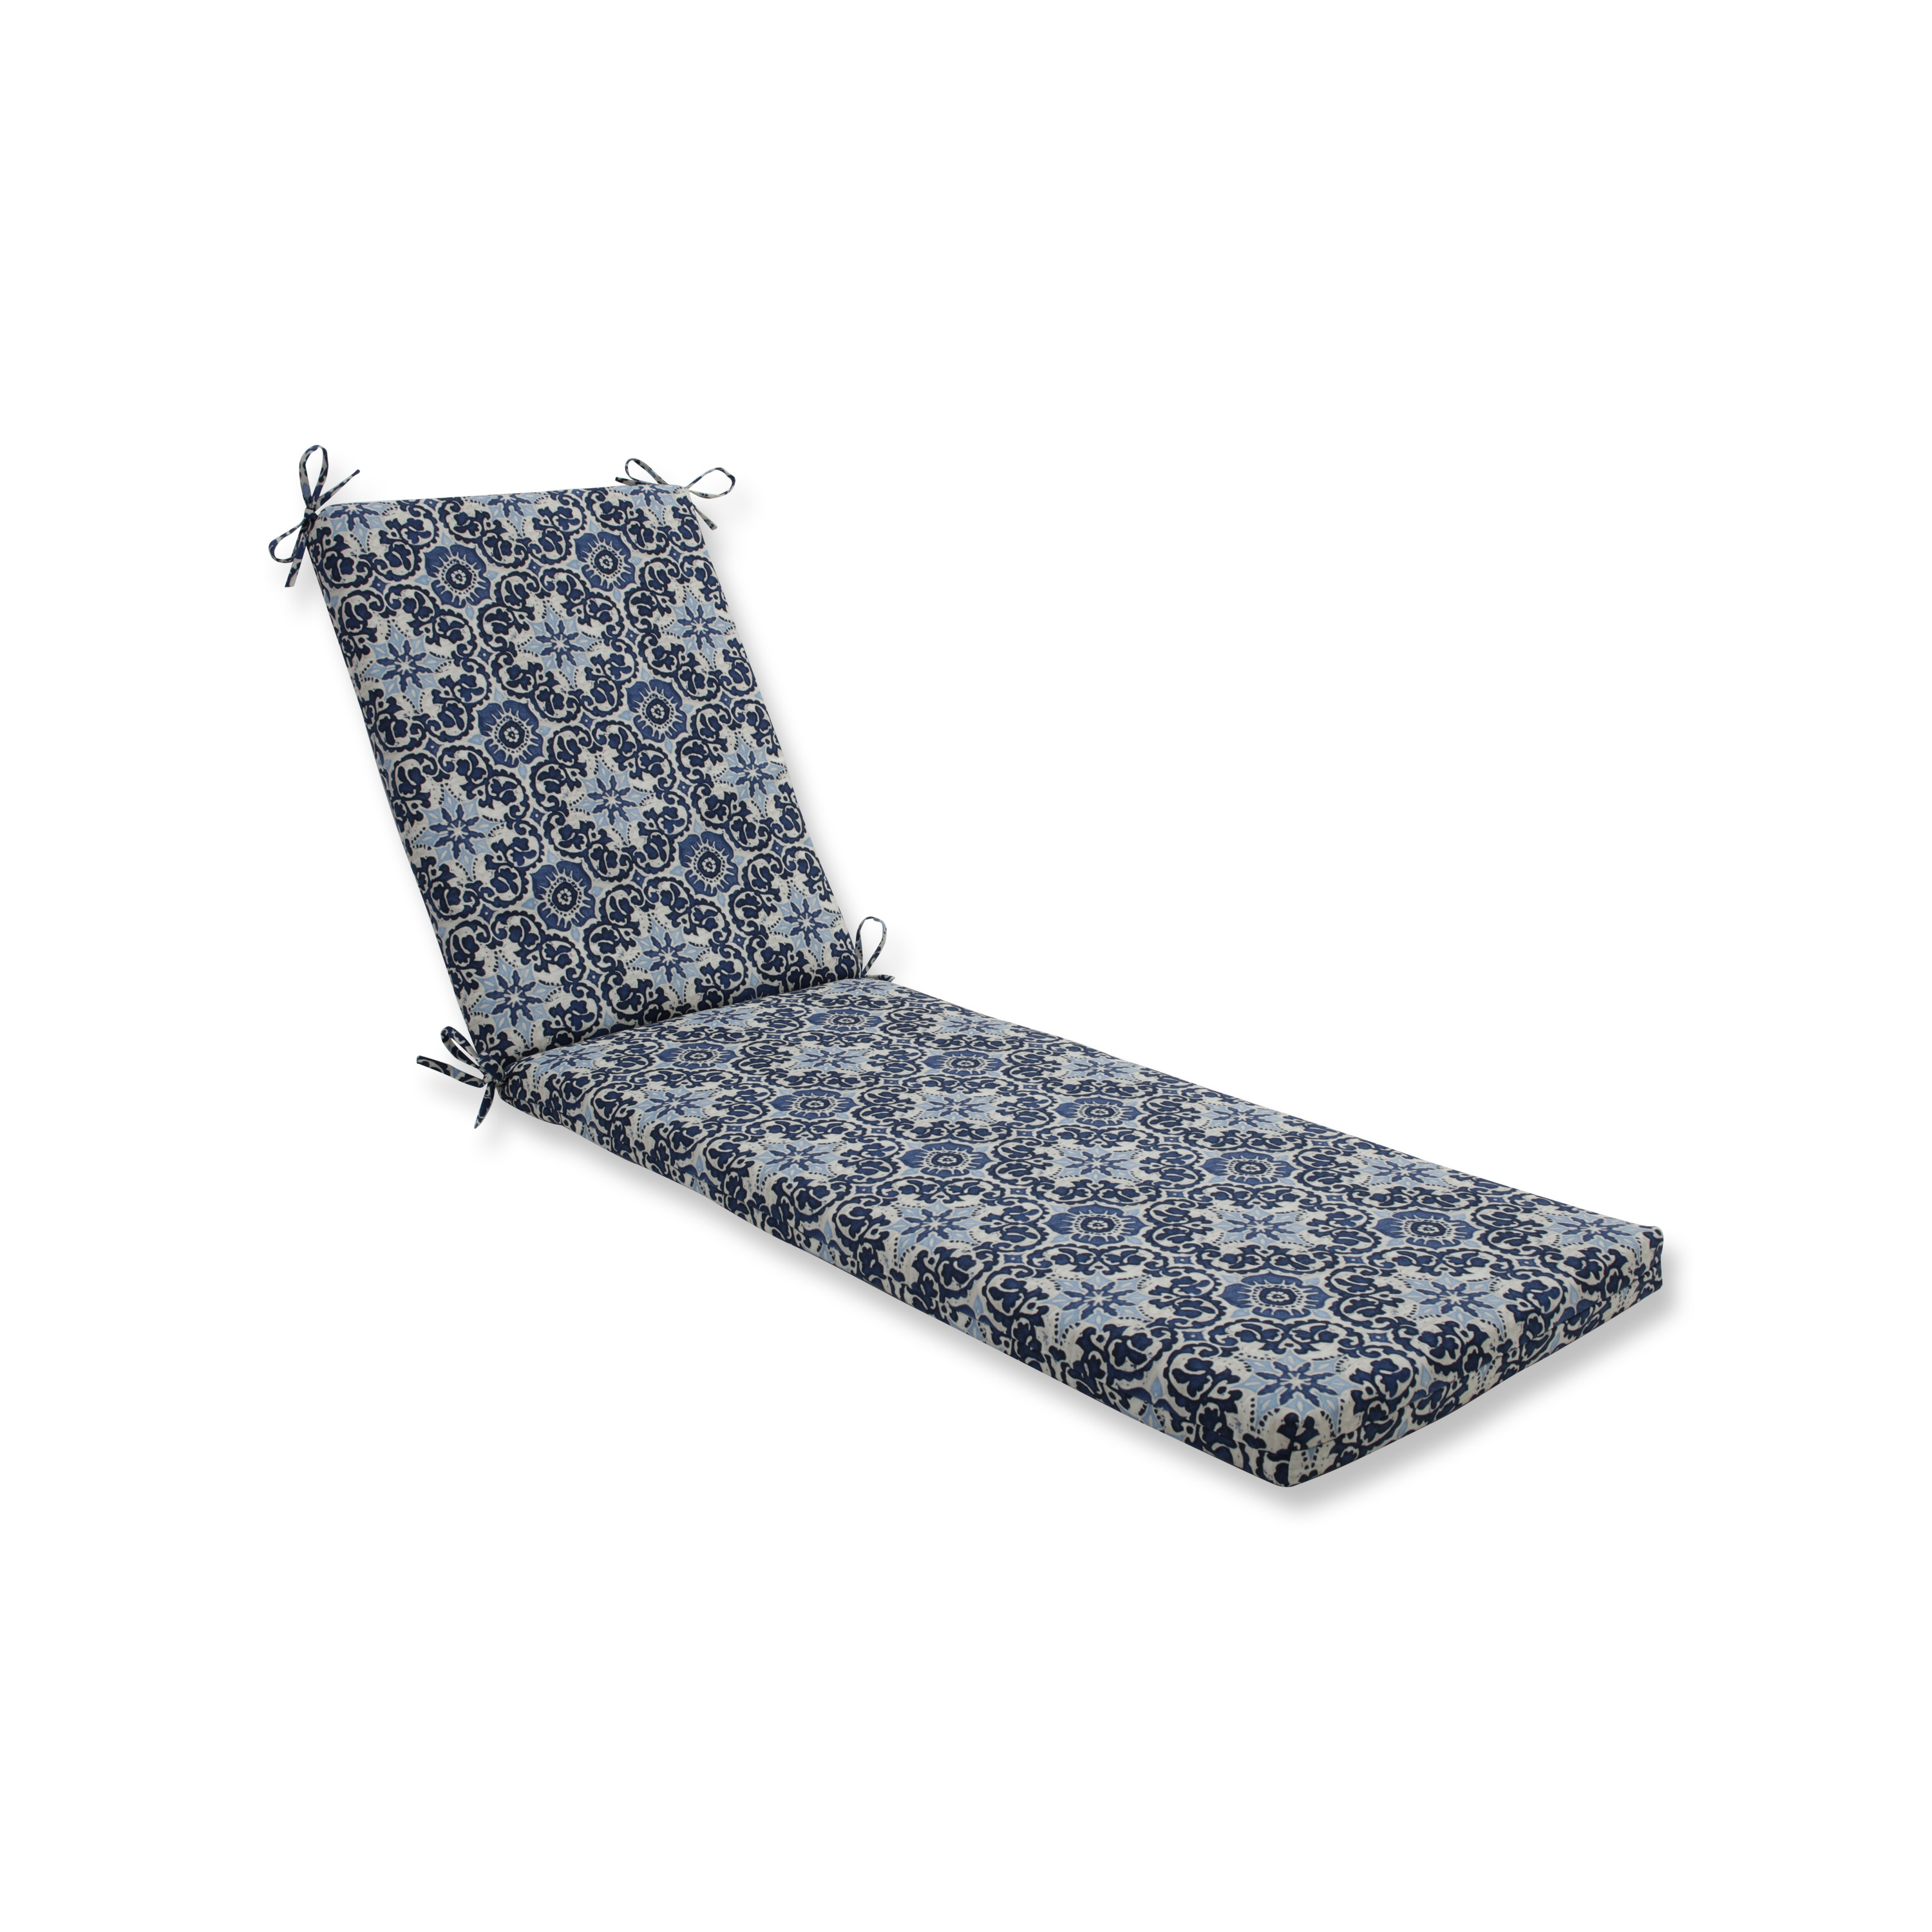 Pillow Perfect Outdoor/Indoor Woodblock Prism Blue Chaise...